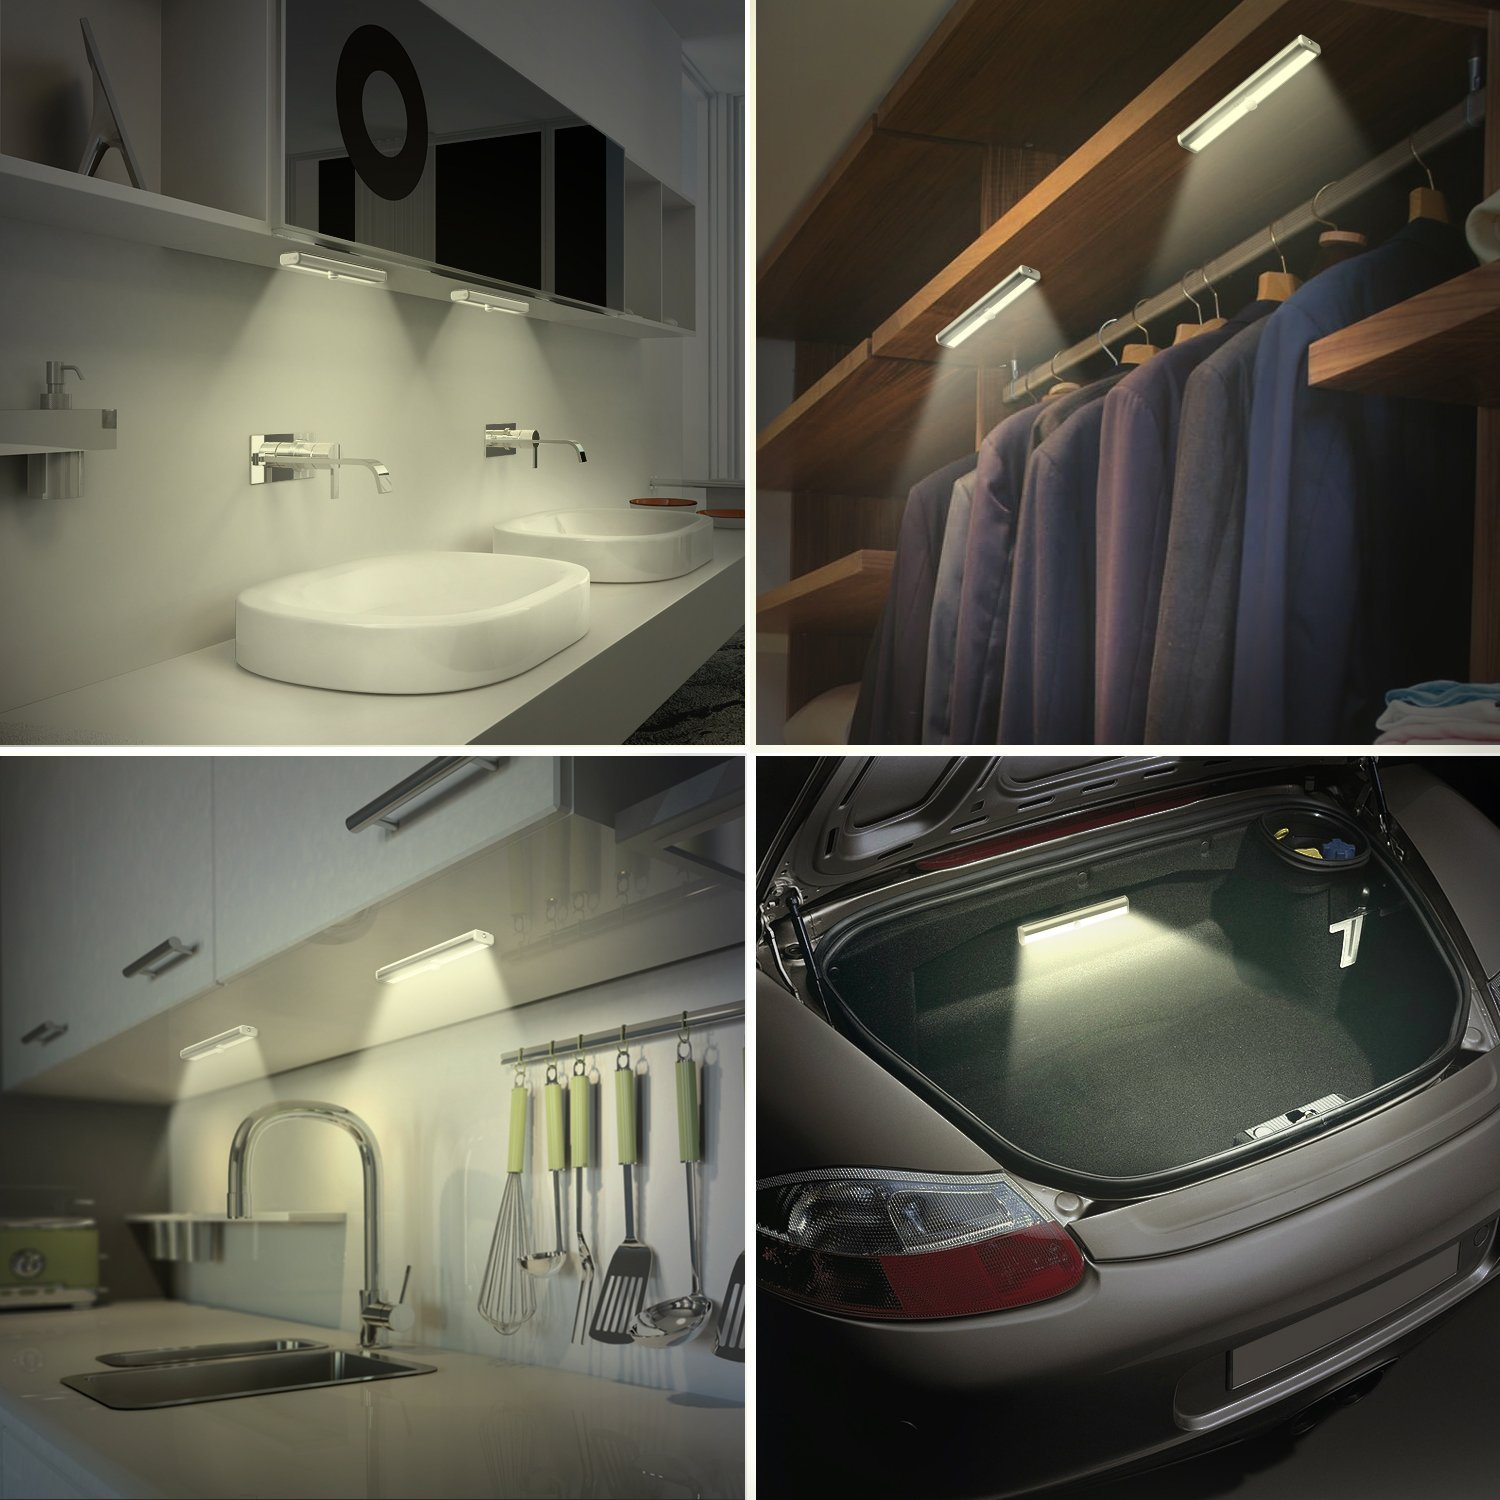 Oxyled Motion Sensor Lights Cordless Closet Light Under